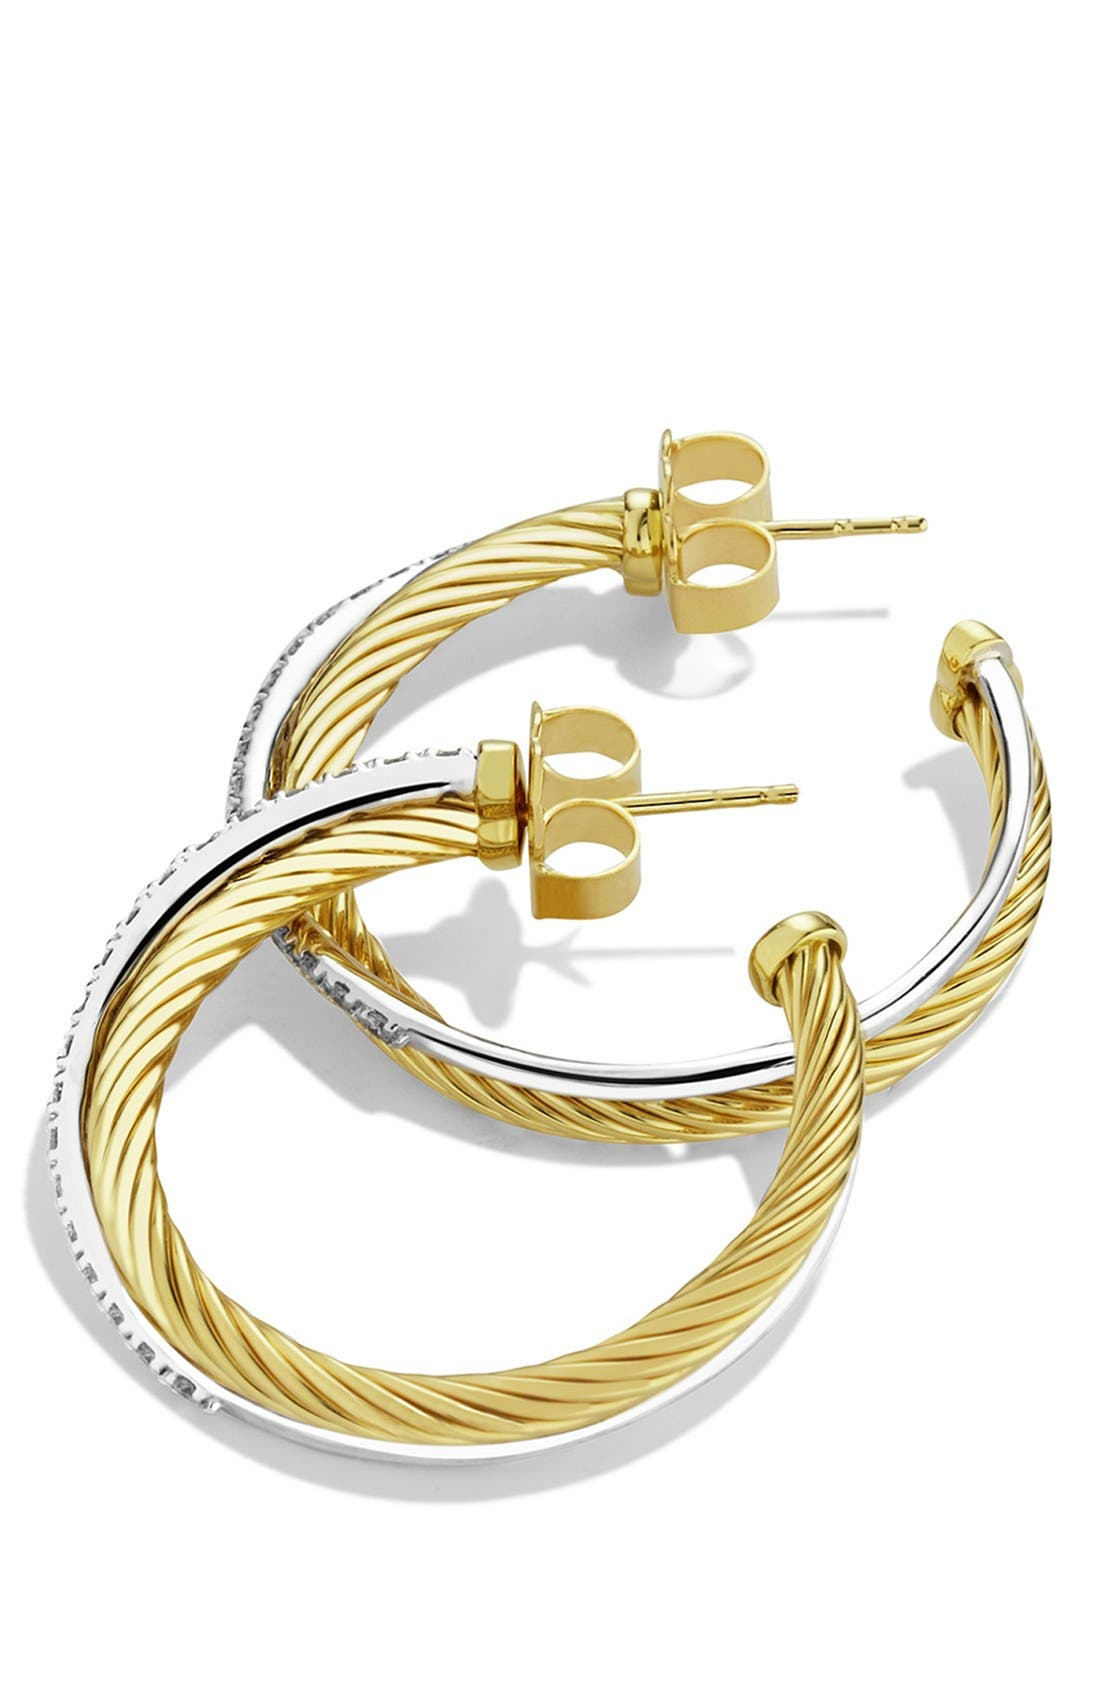 Alternate Image 2  - David Yurman 'Crossover' Medium Hoop Earrings with Diamonds in Gold